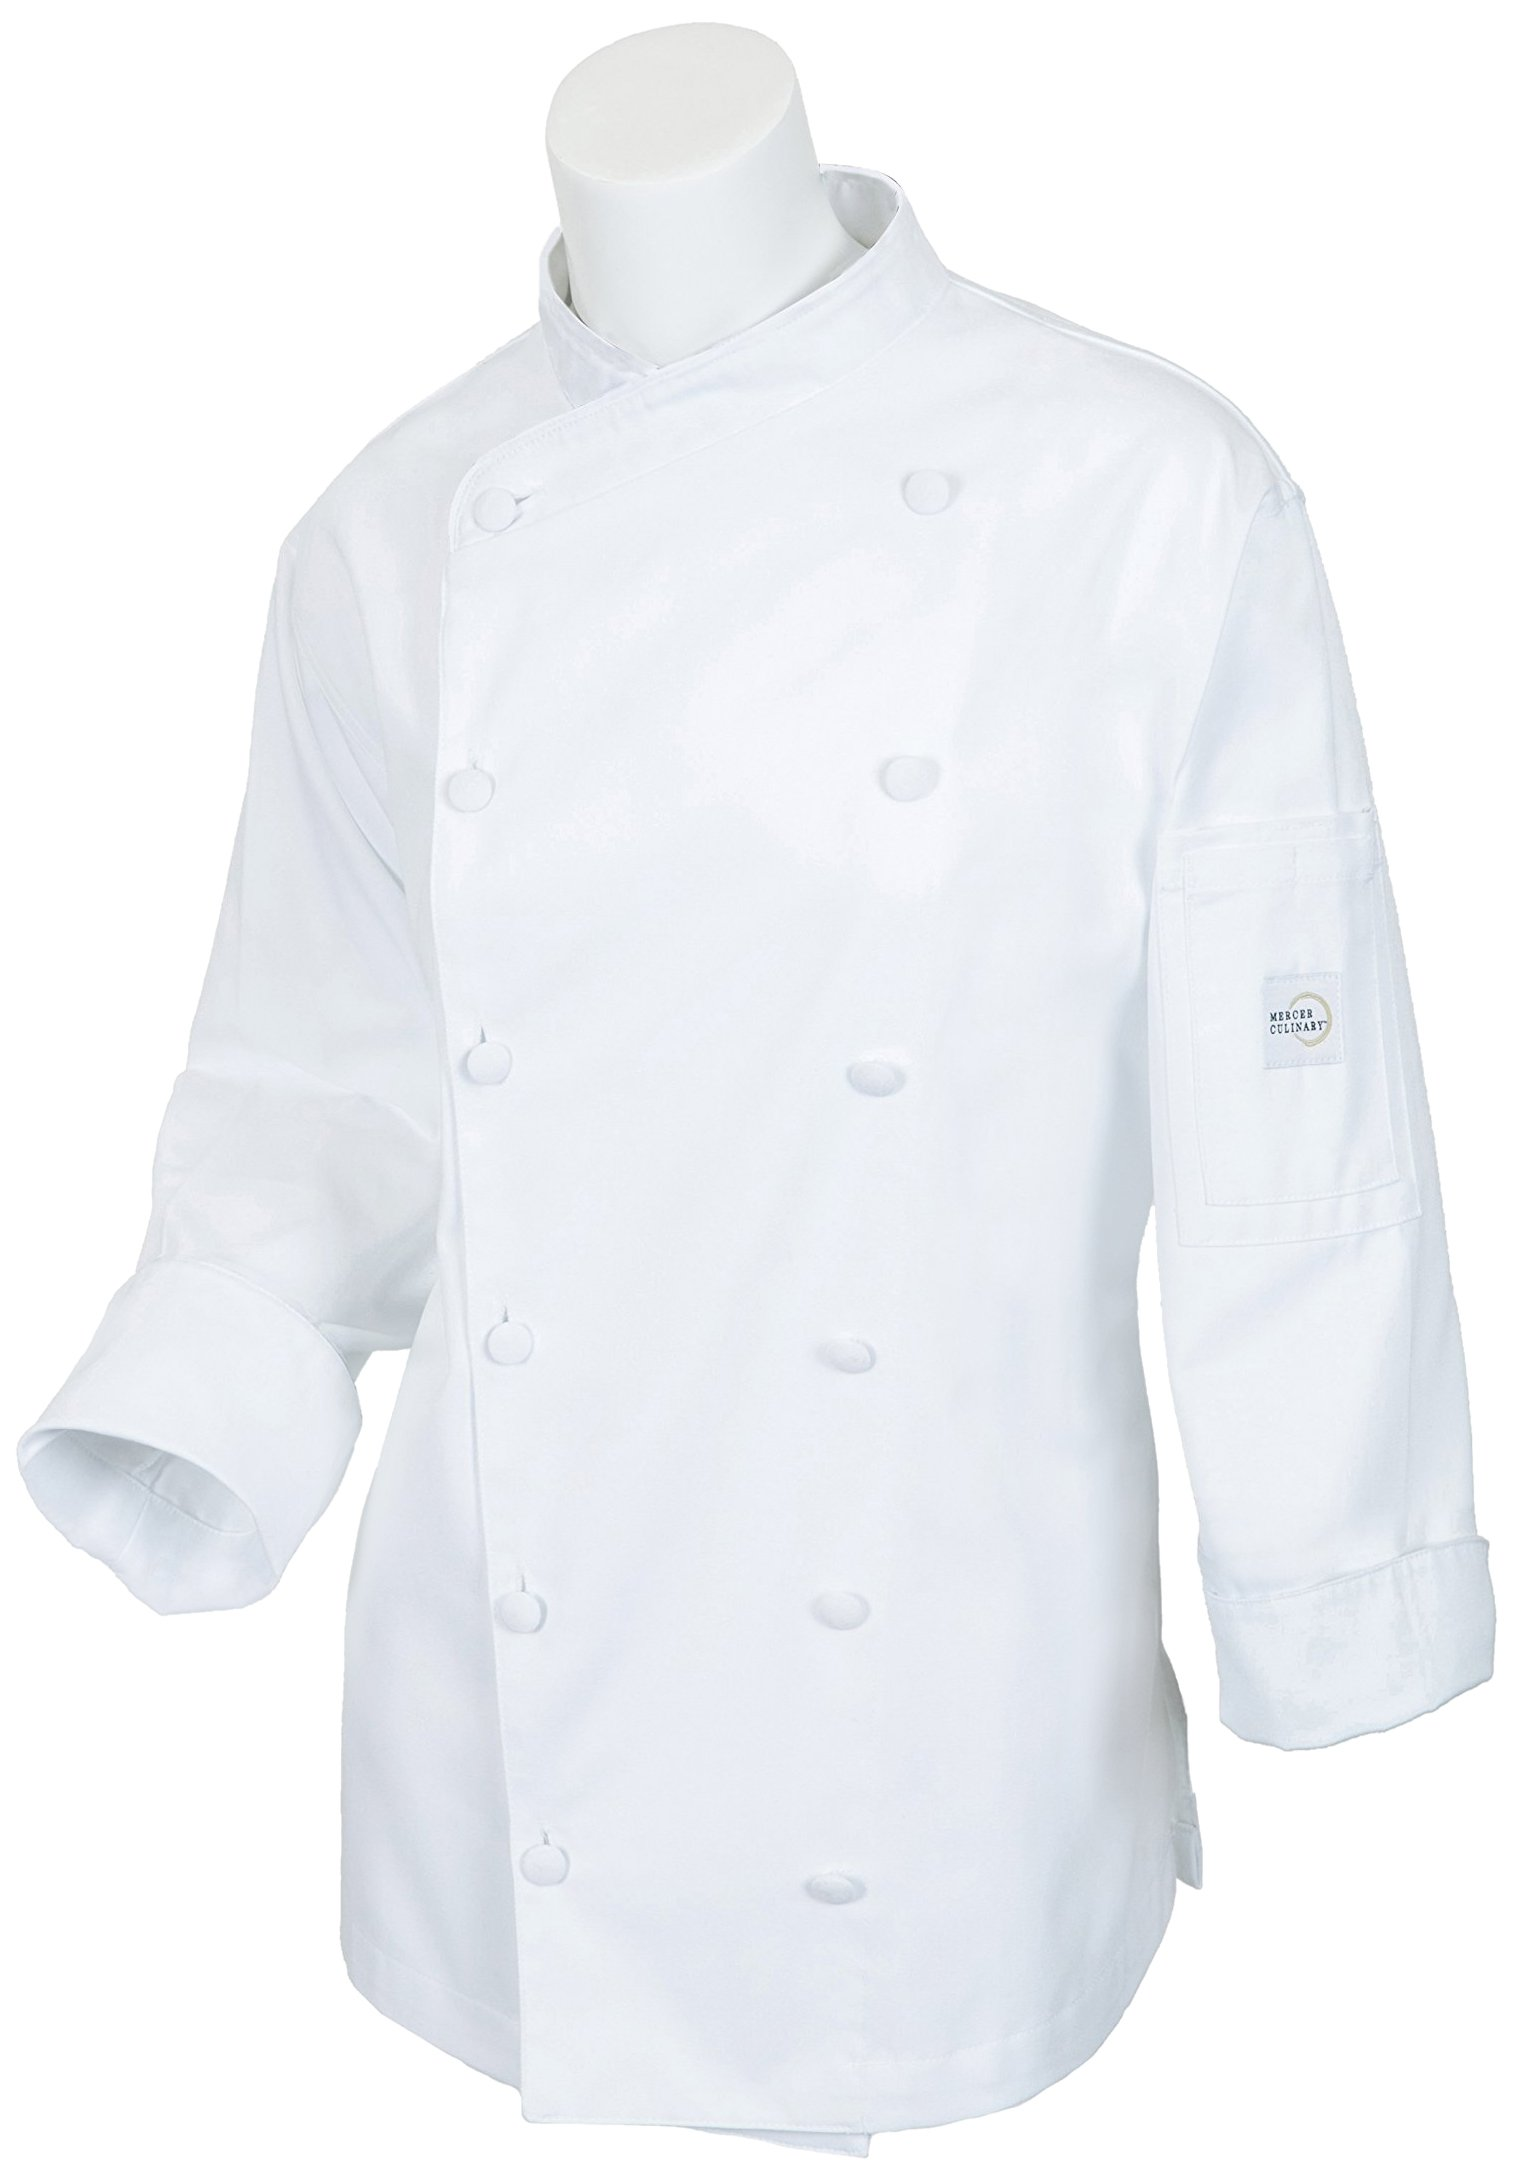 Mercer Culinary M62040WH3X Renaissance Women's Scoop Neck Chef Jacket, 3X-Large, White by Mercer Culinary